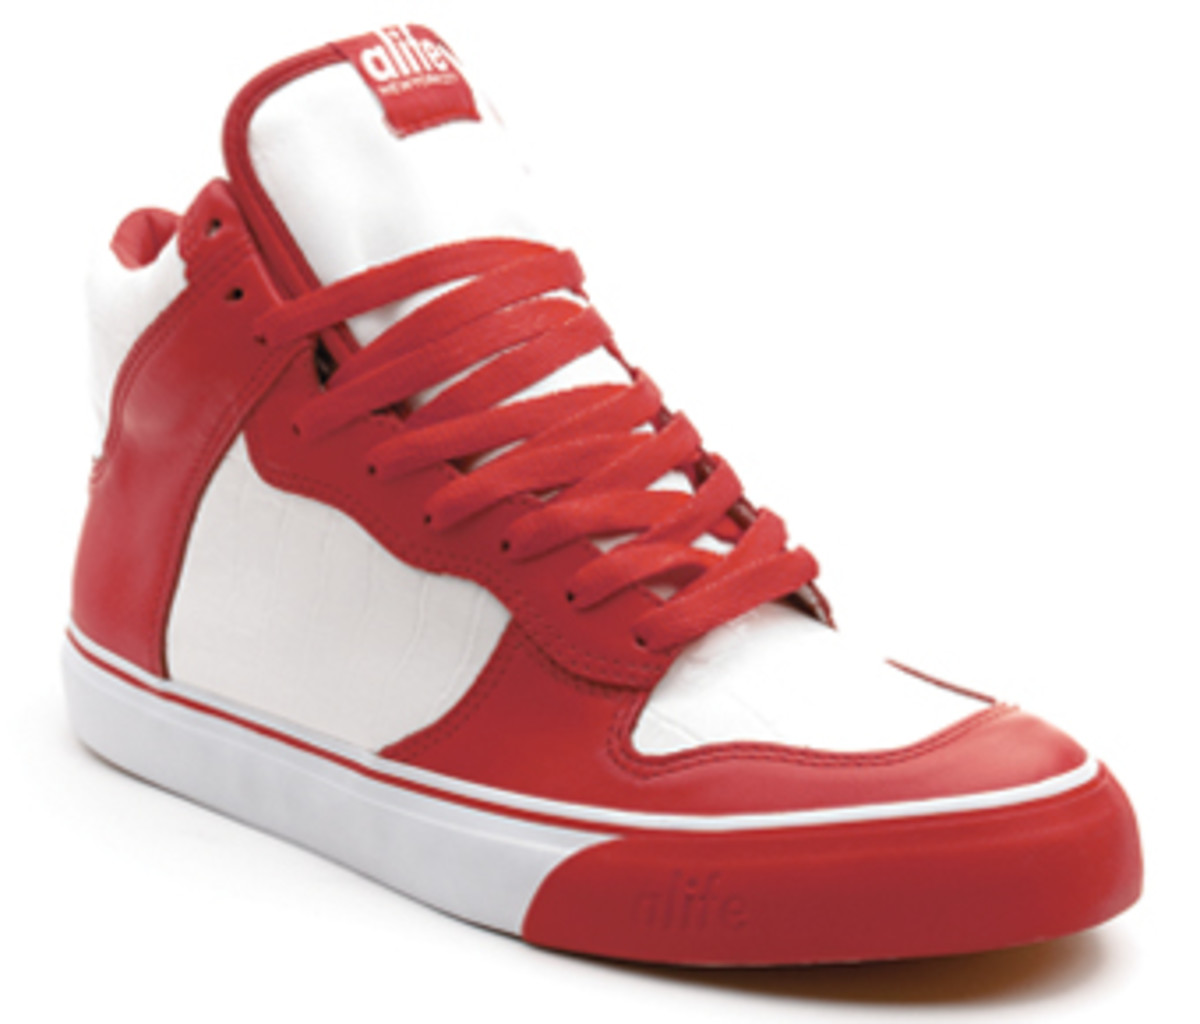 ALIFE - Fall 2006 Footwear Collection - 7